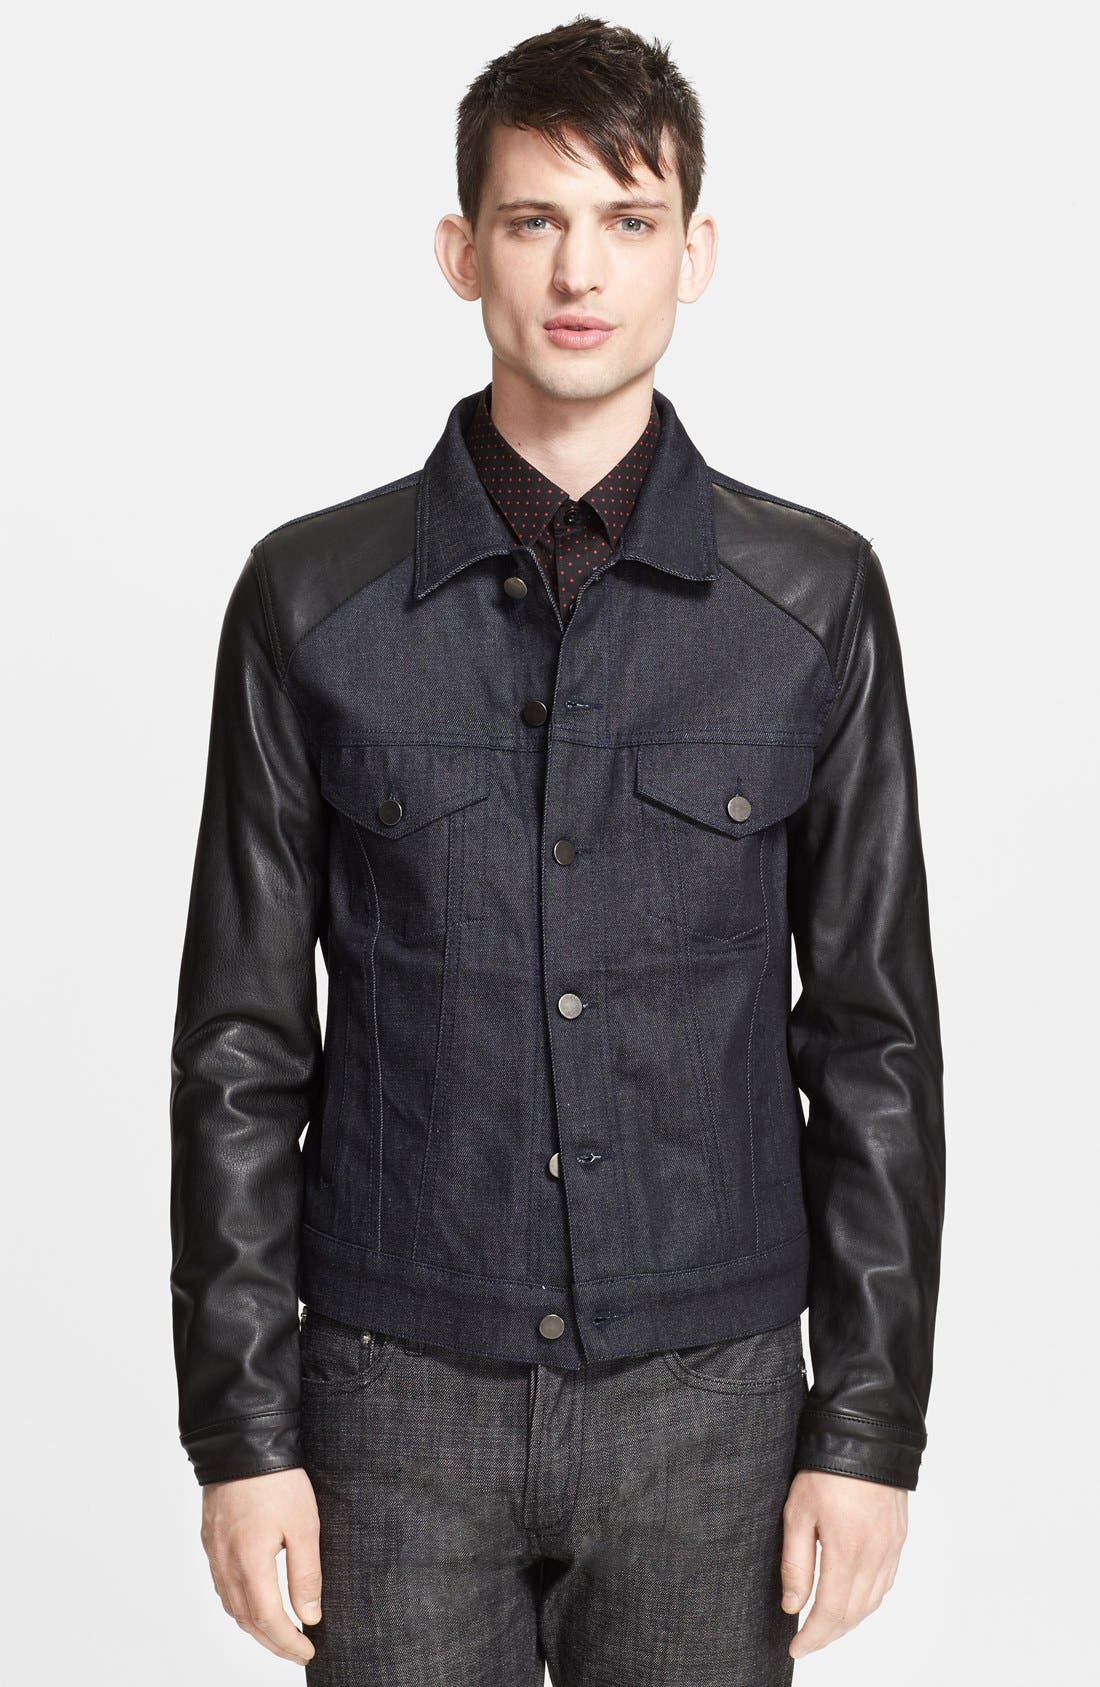 Alternate Image 1 Selected - The Kooples Denim Jacket with Leather Sleeves